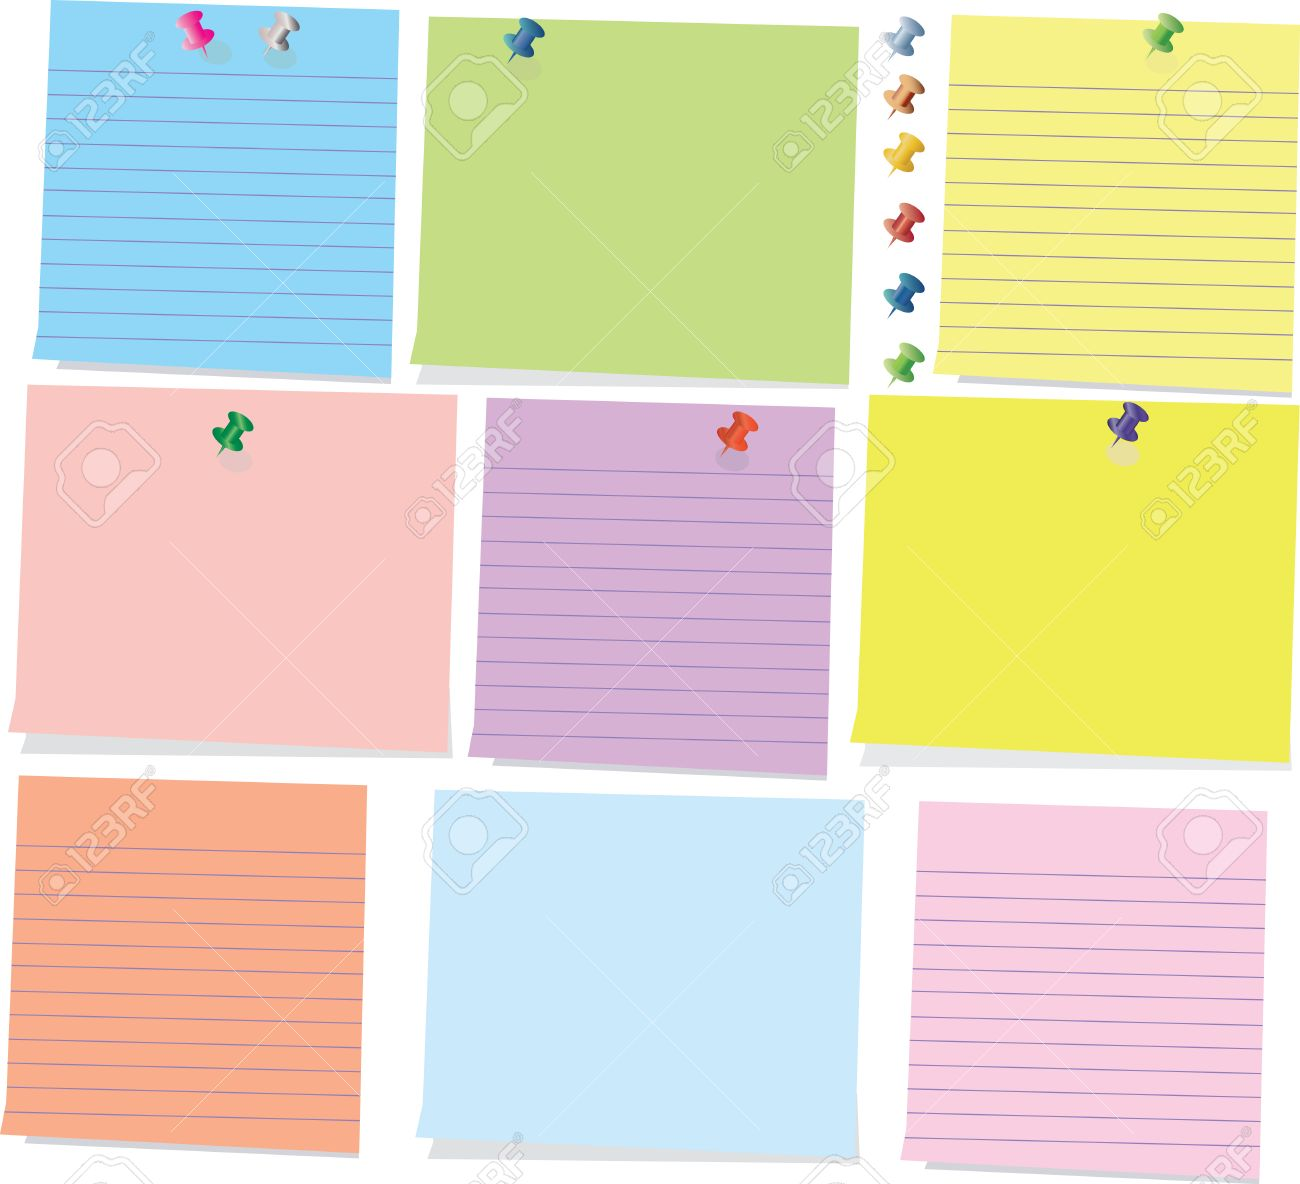 Free vector graphic sticky note note info paper free image on - Colorful Sticky Notes Stock Vector 4450772